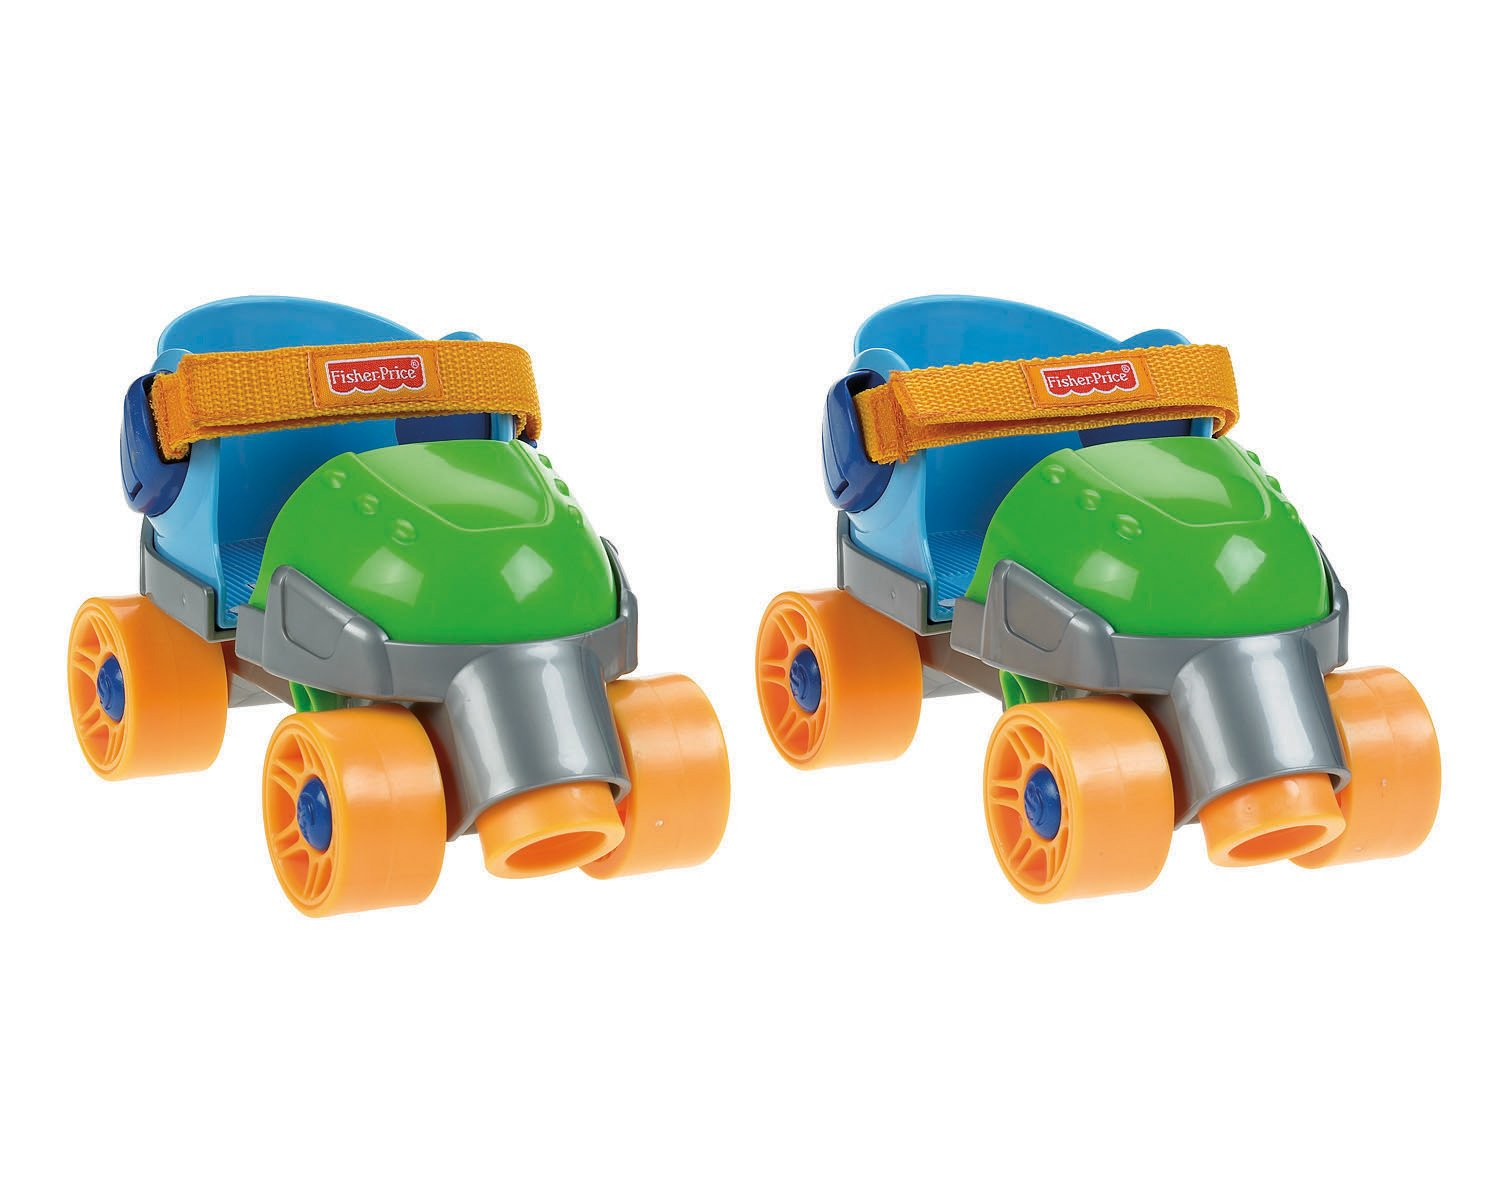 Quad roller skates amazon - Buy Fisher Price Grow With Me 1 2 3 Roller Skates Boys Online At Low Prices In India Amazon In